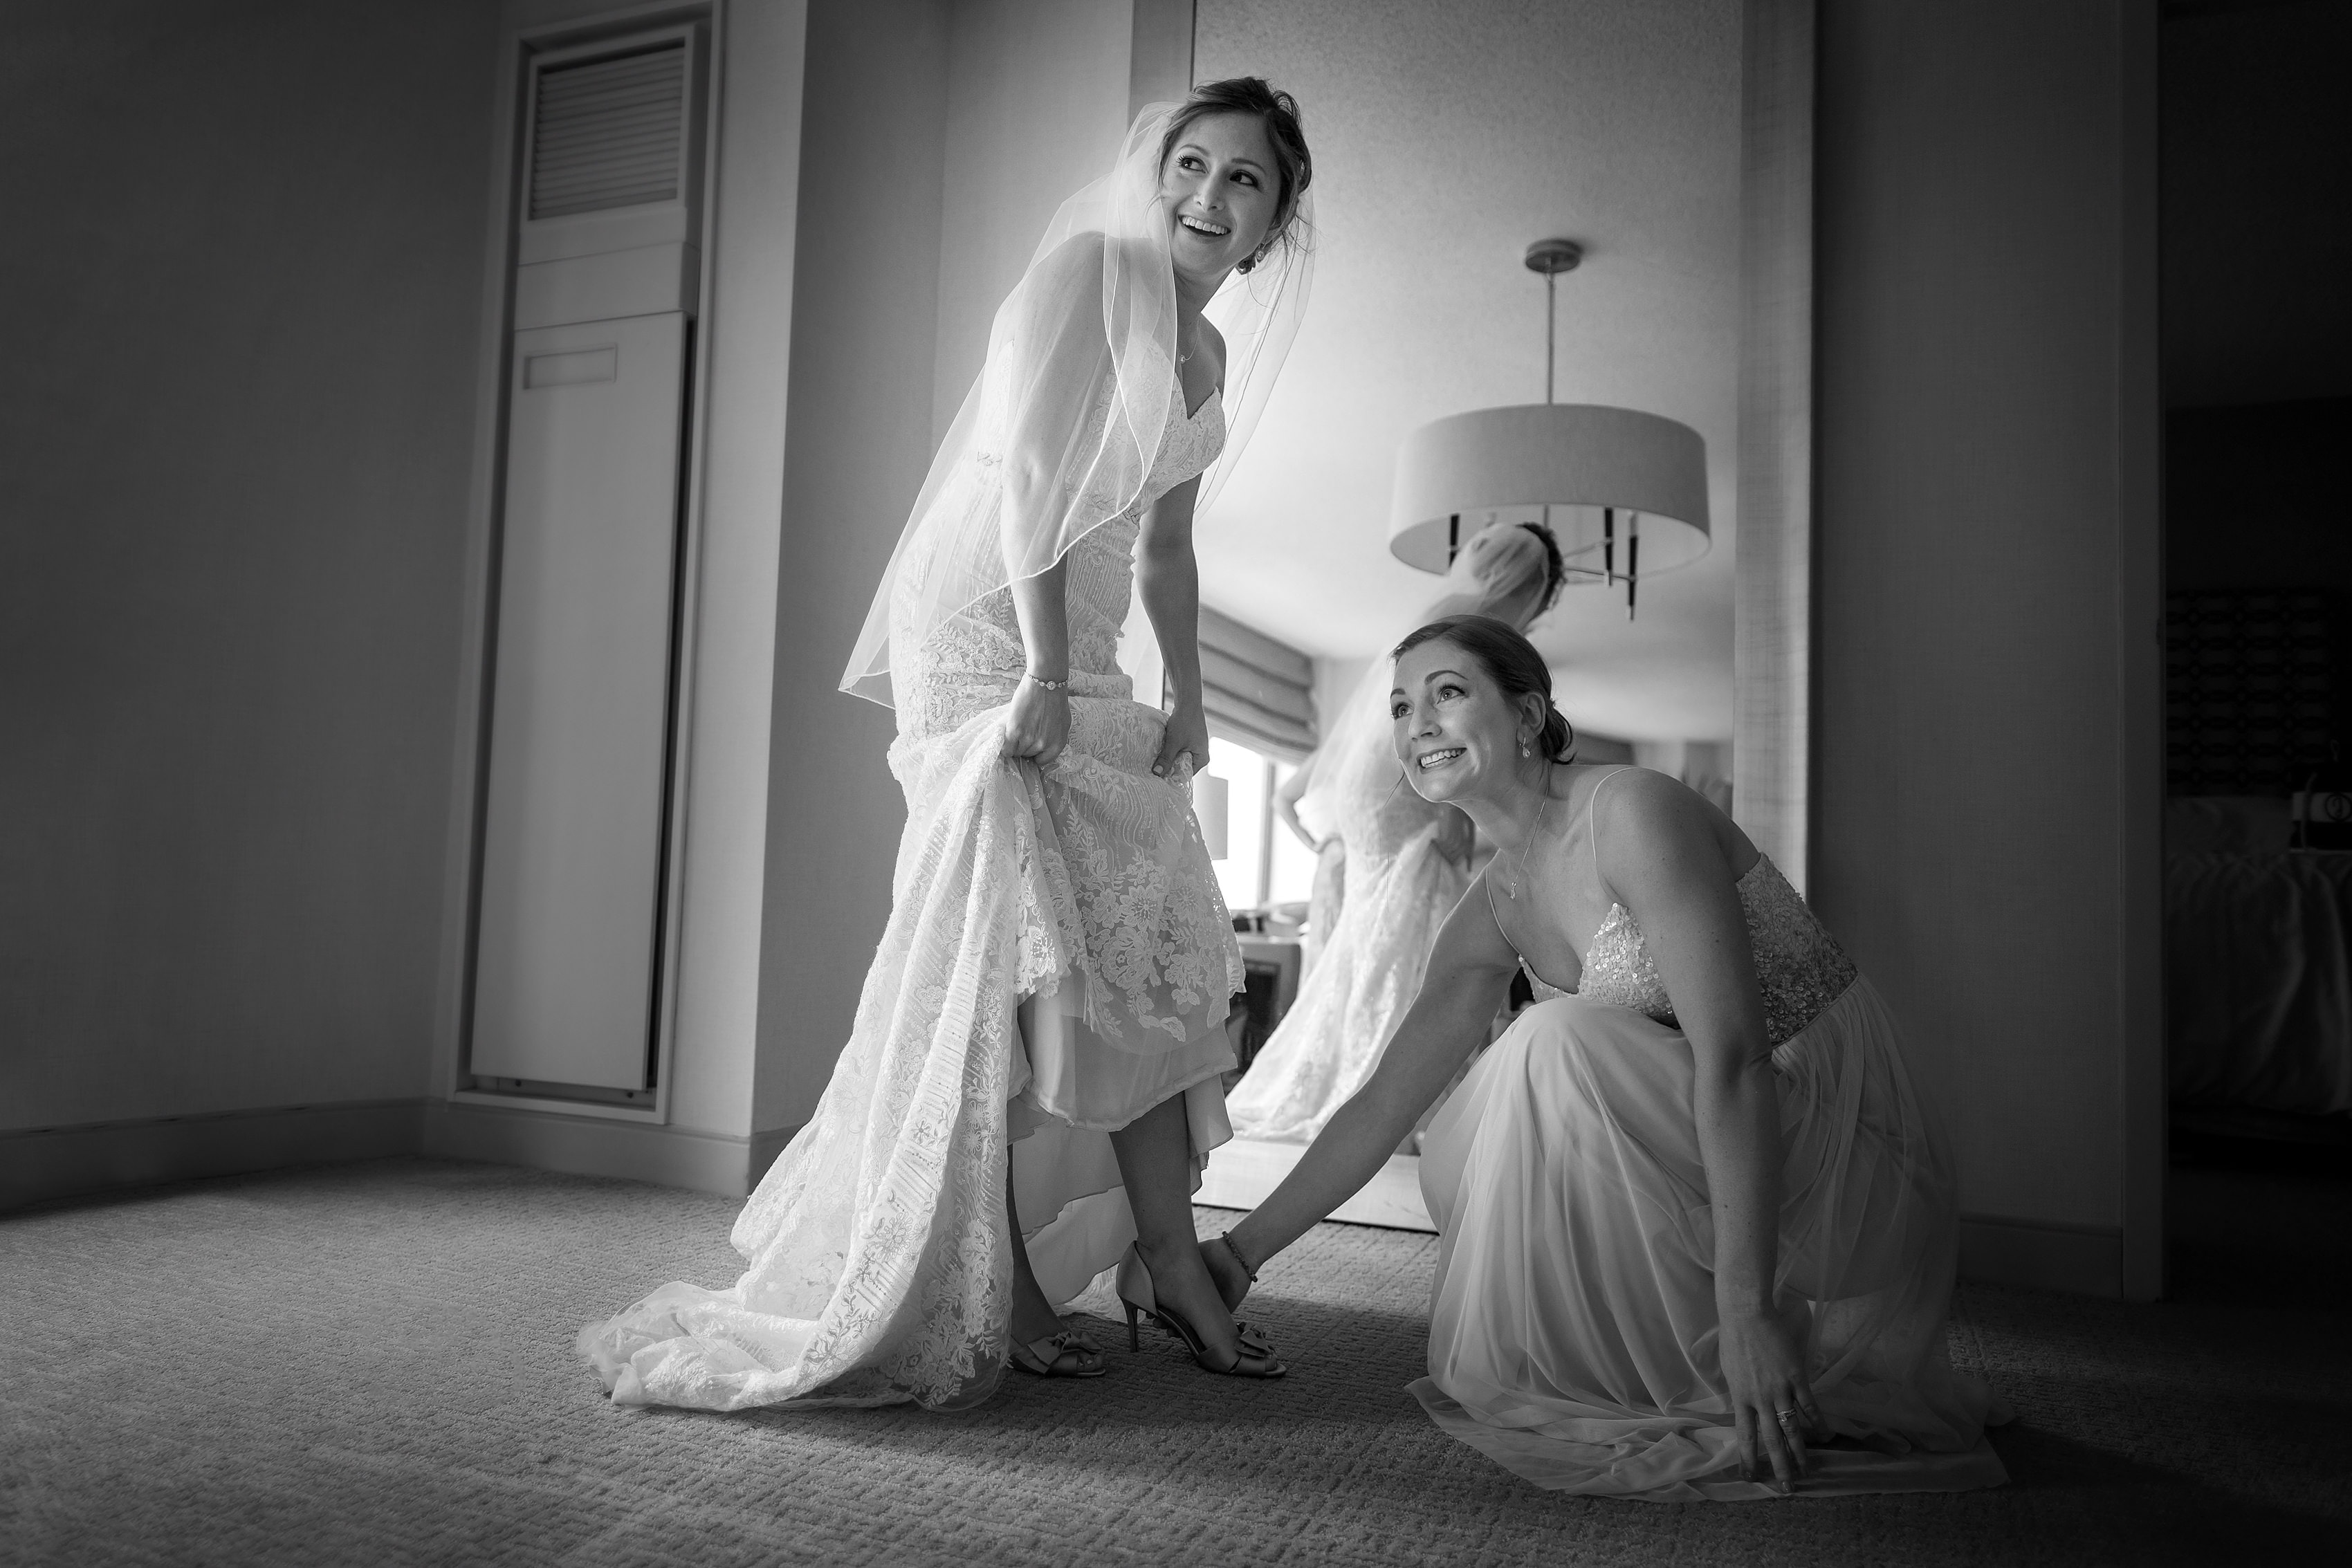 bridesmaid helps bride with shoes while getting ready for wedding at Sheraton Grand hotel in Chicago